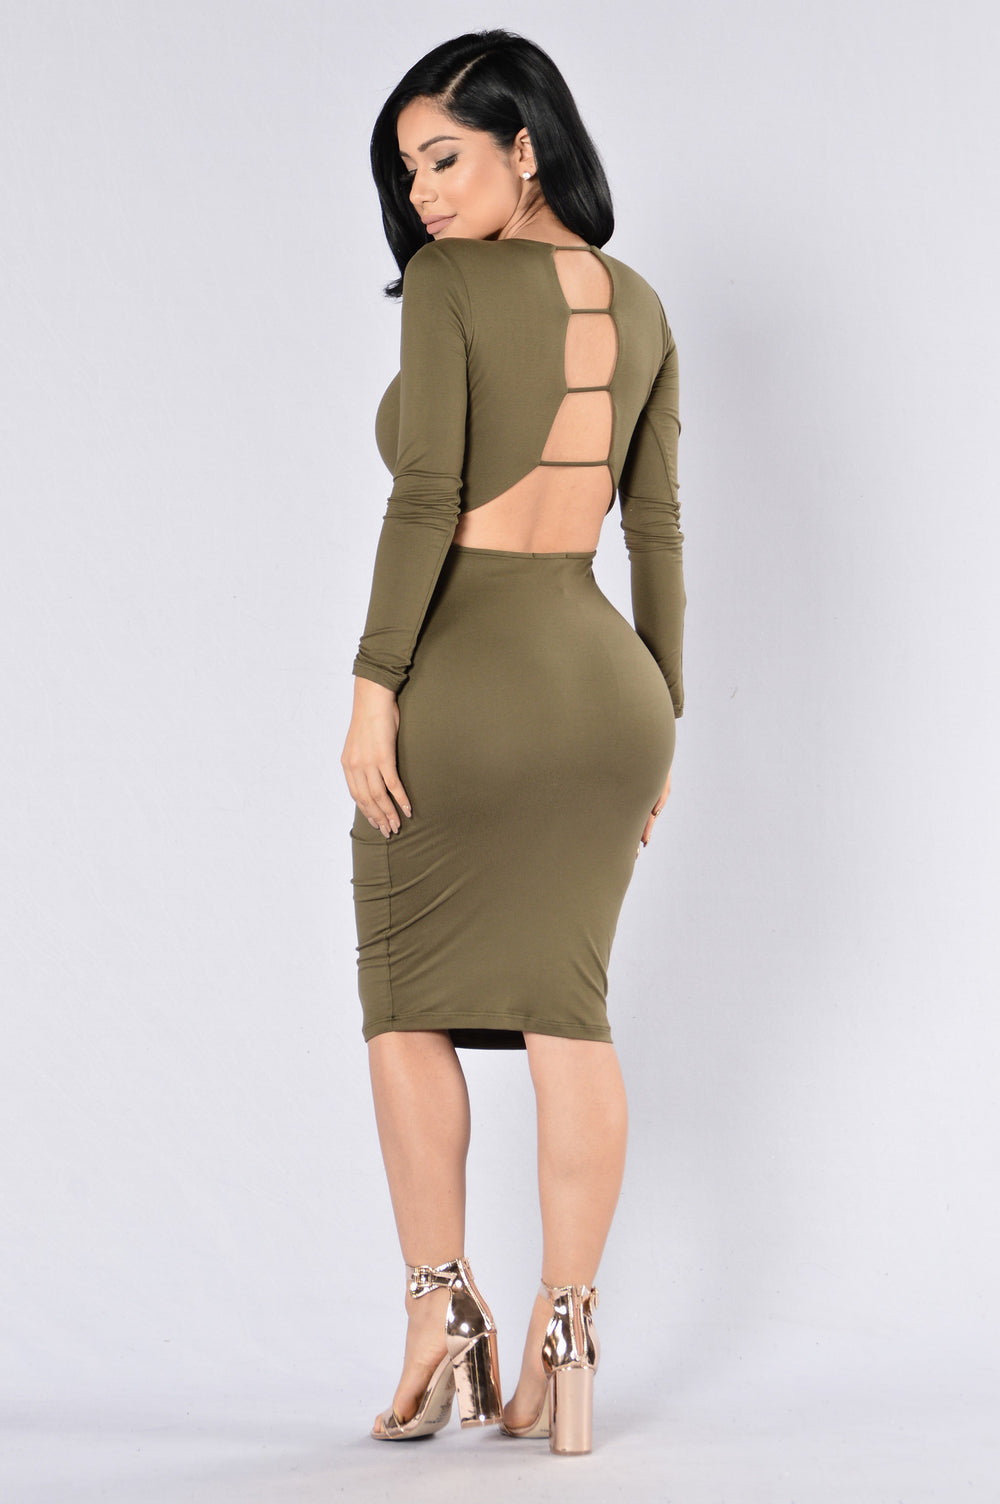 Play With Fire Dress - Olive